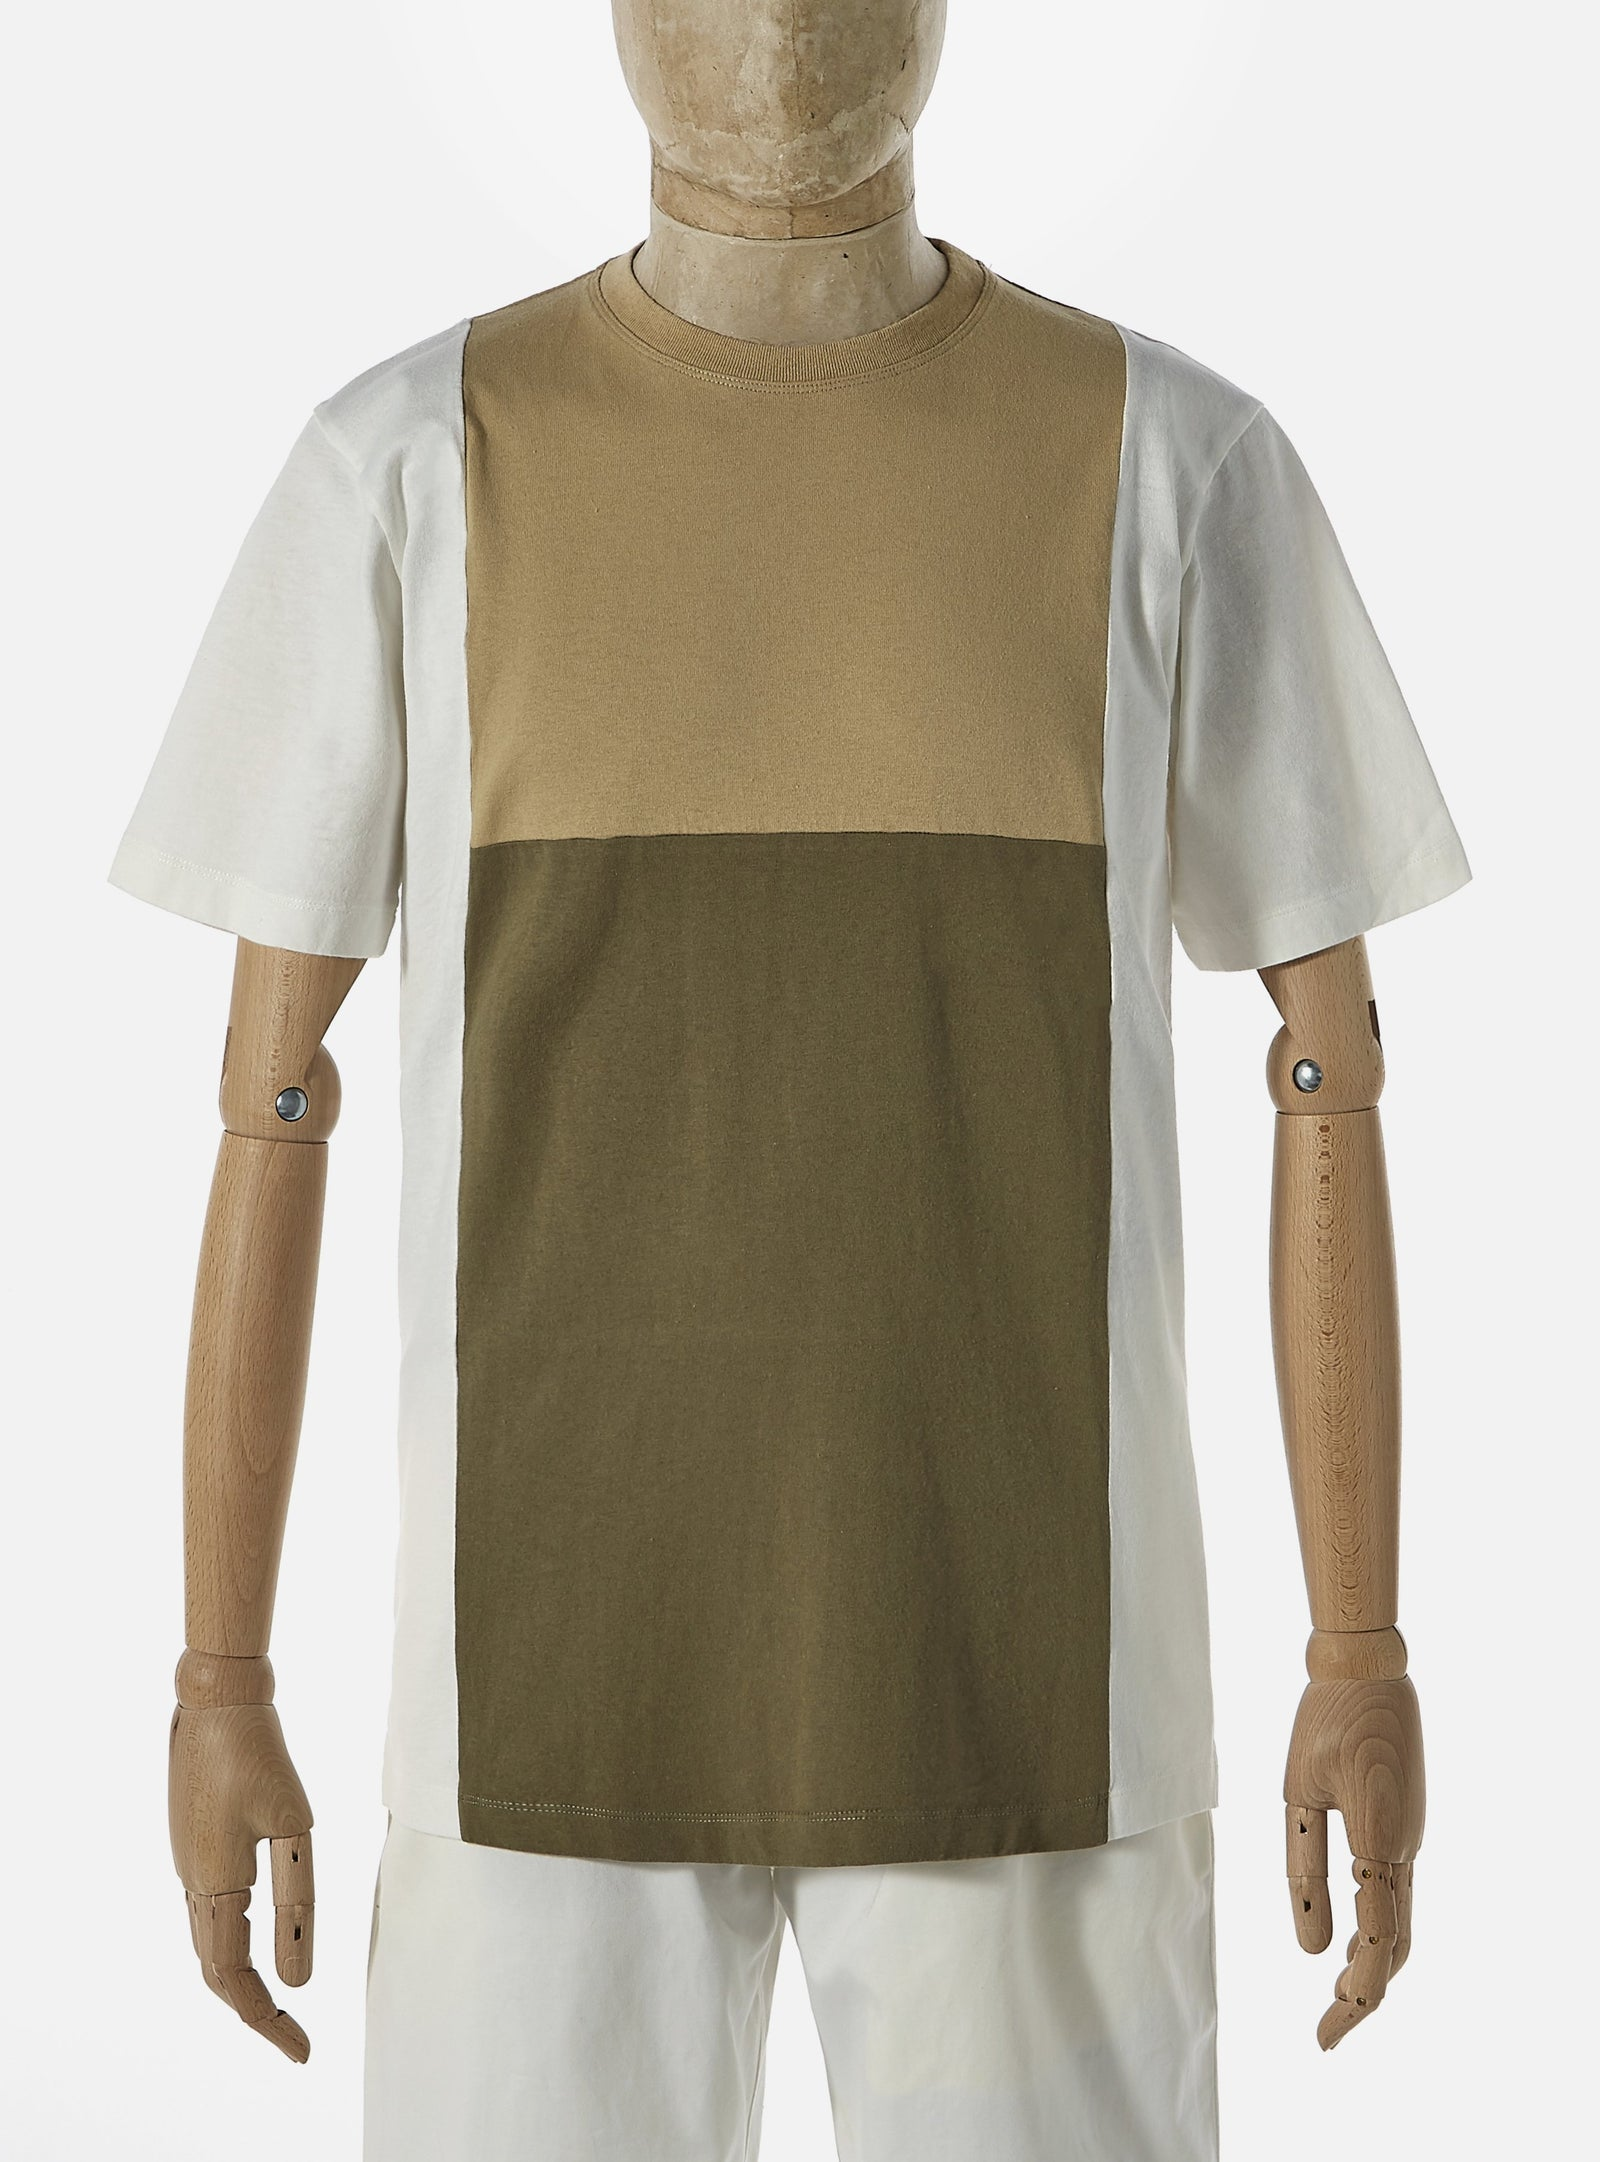 Universal Works 'Save That Jersey' Panel Tee in Ecru Mixed